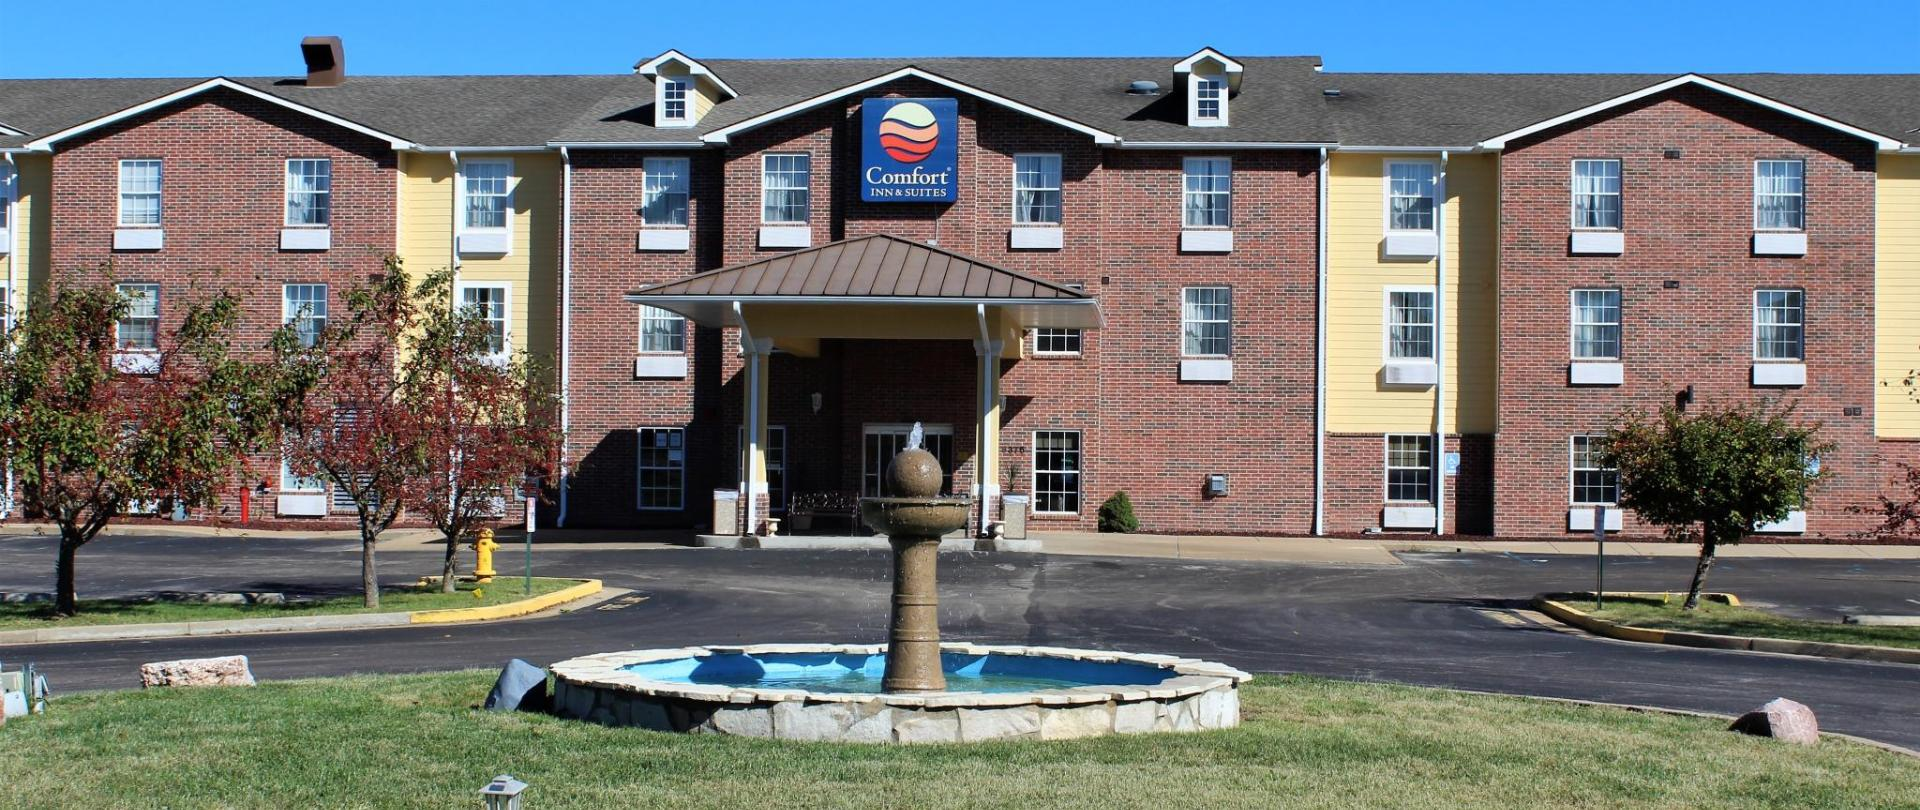 Comfort Inn Suites St Louis Hotels Chesterfield Mo